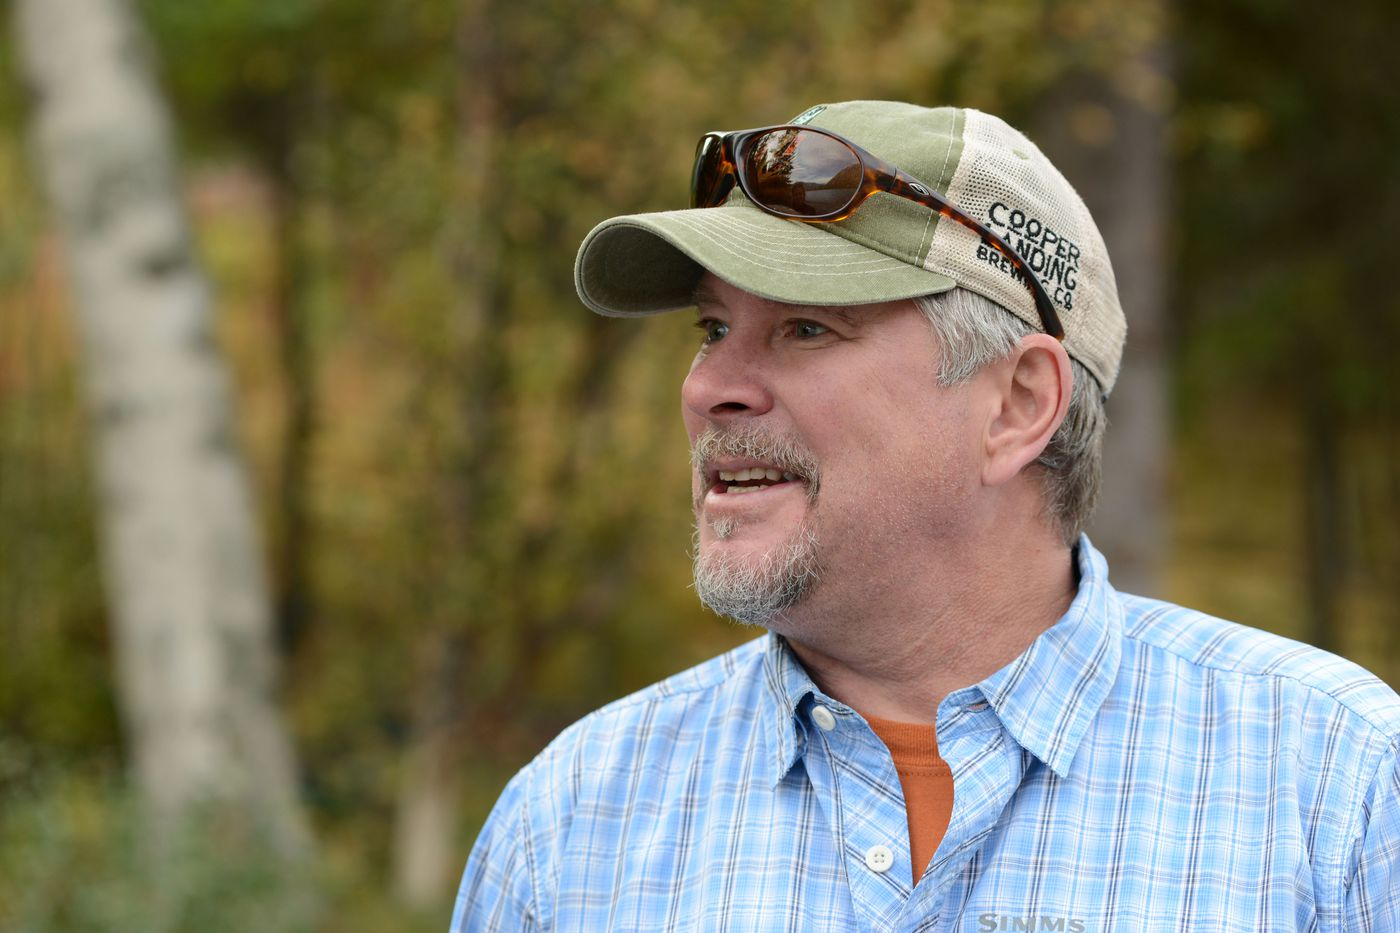 Stacy Corbin, owner of Mystic Waters Fly Fishing, talks about his business and the management of the Swan Lake fire Sept. 6, 2019. (Anne Raup / ADN)